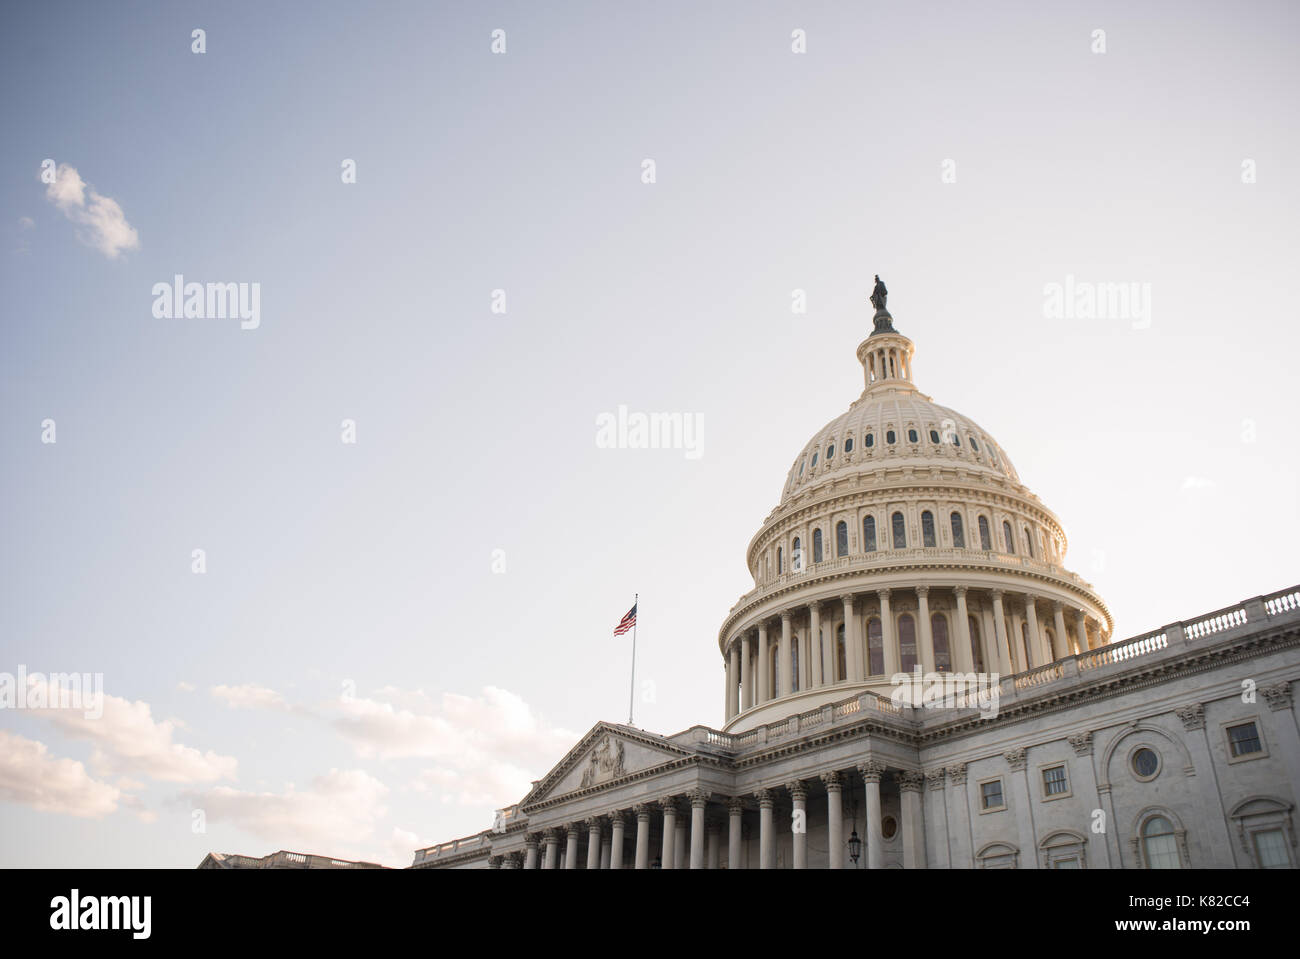 East side of the U.S. Capitol - Stock Image